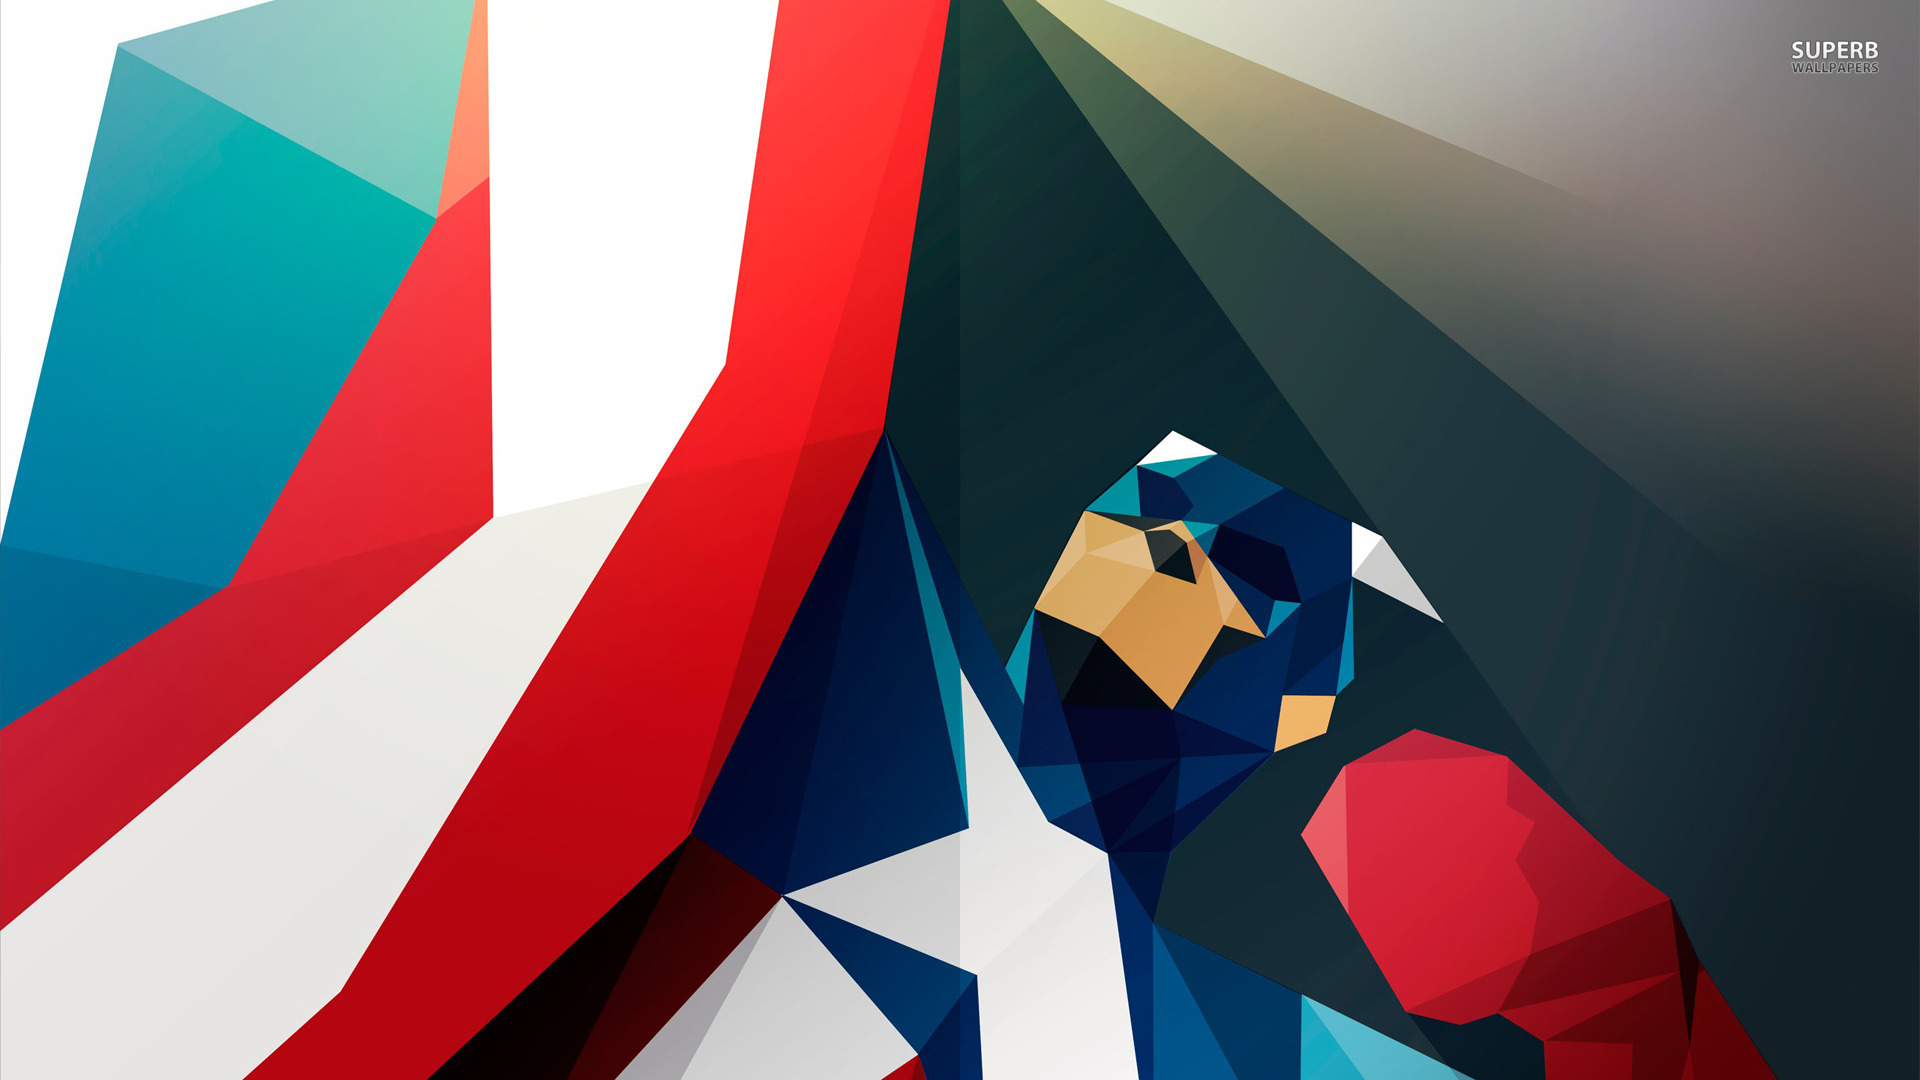 wallpaper captain america cartoon desktop desktop1 1920x1080